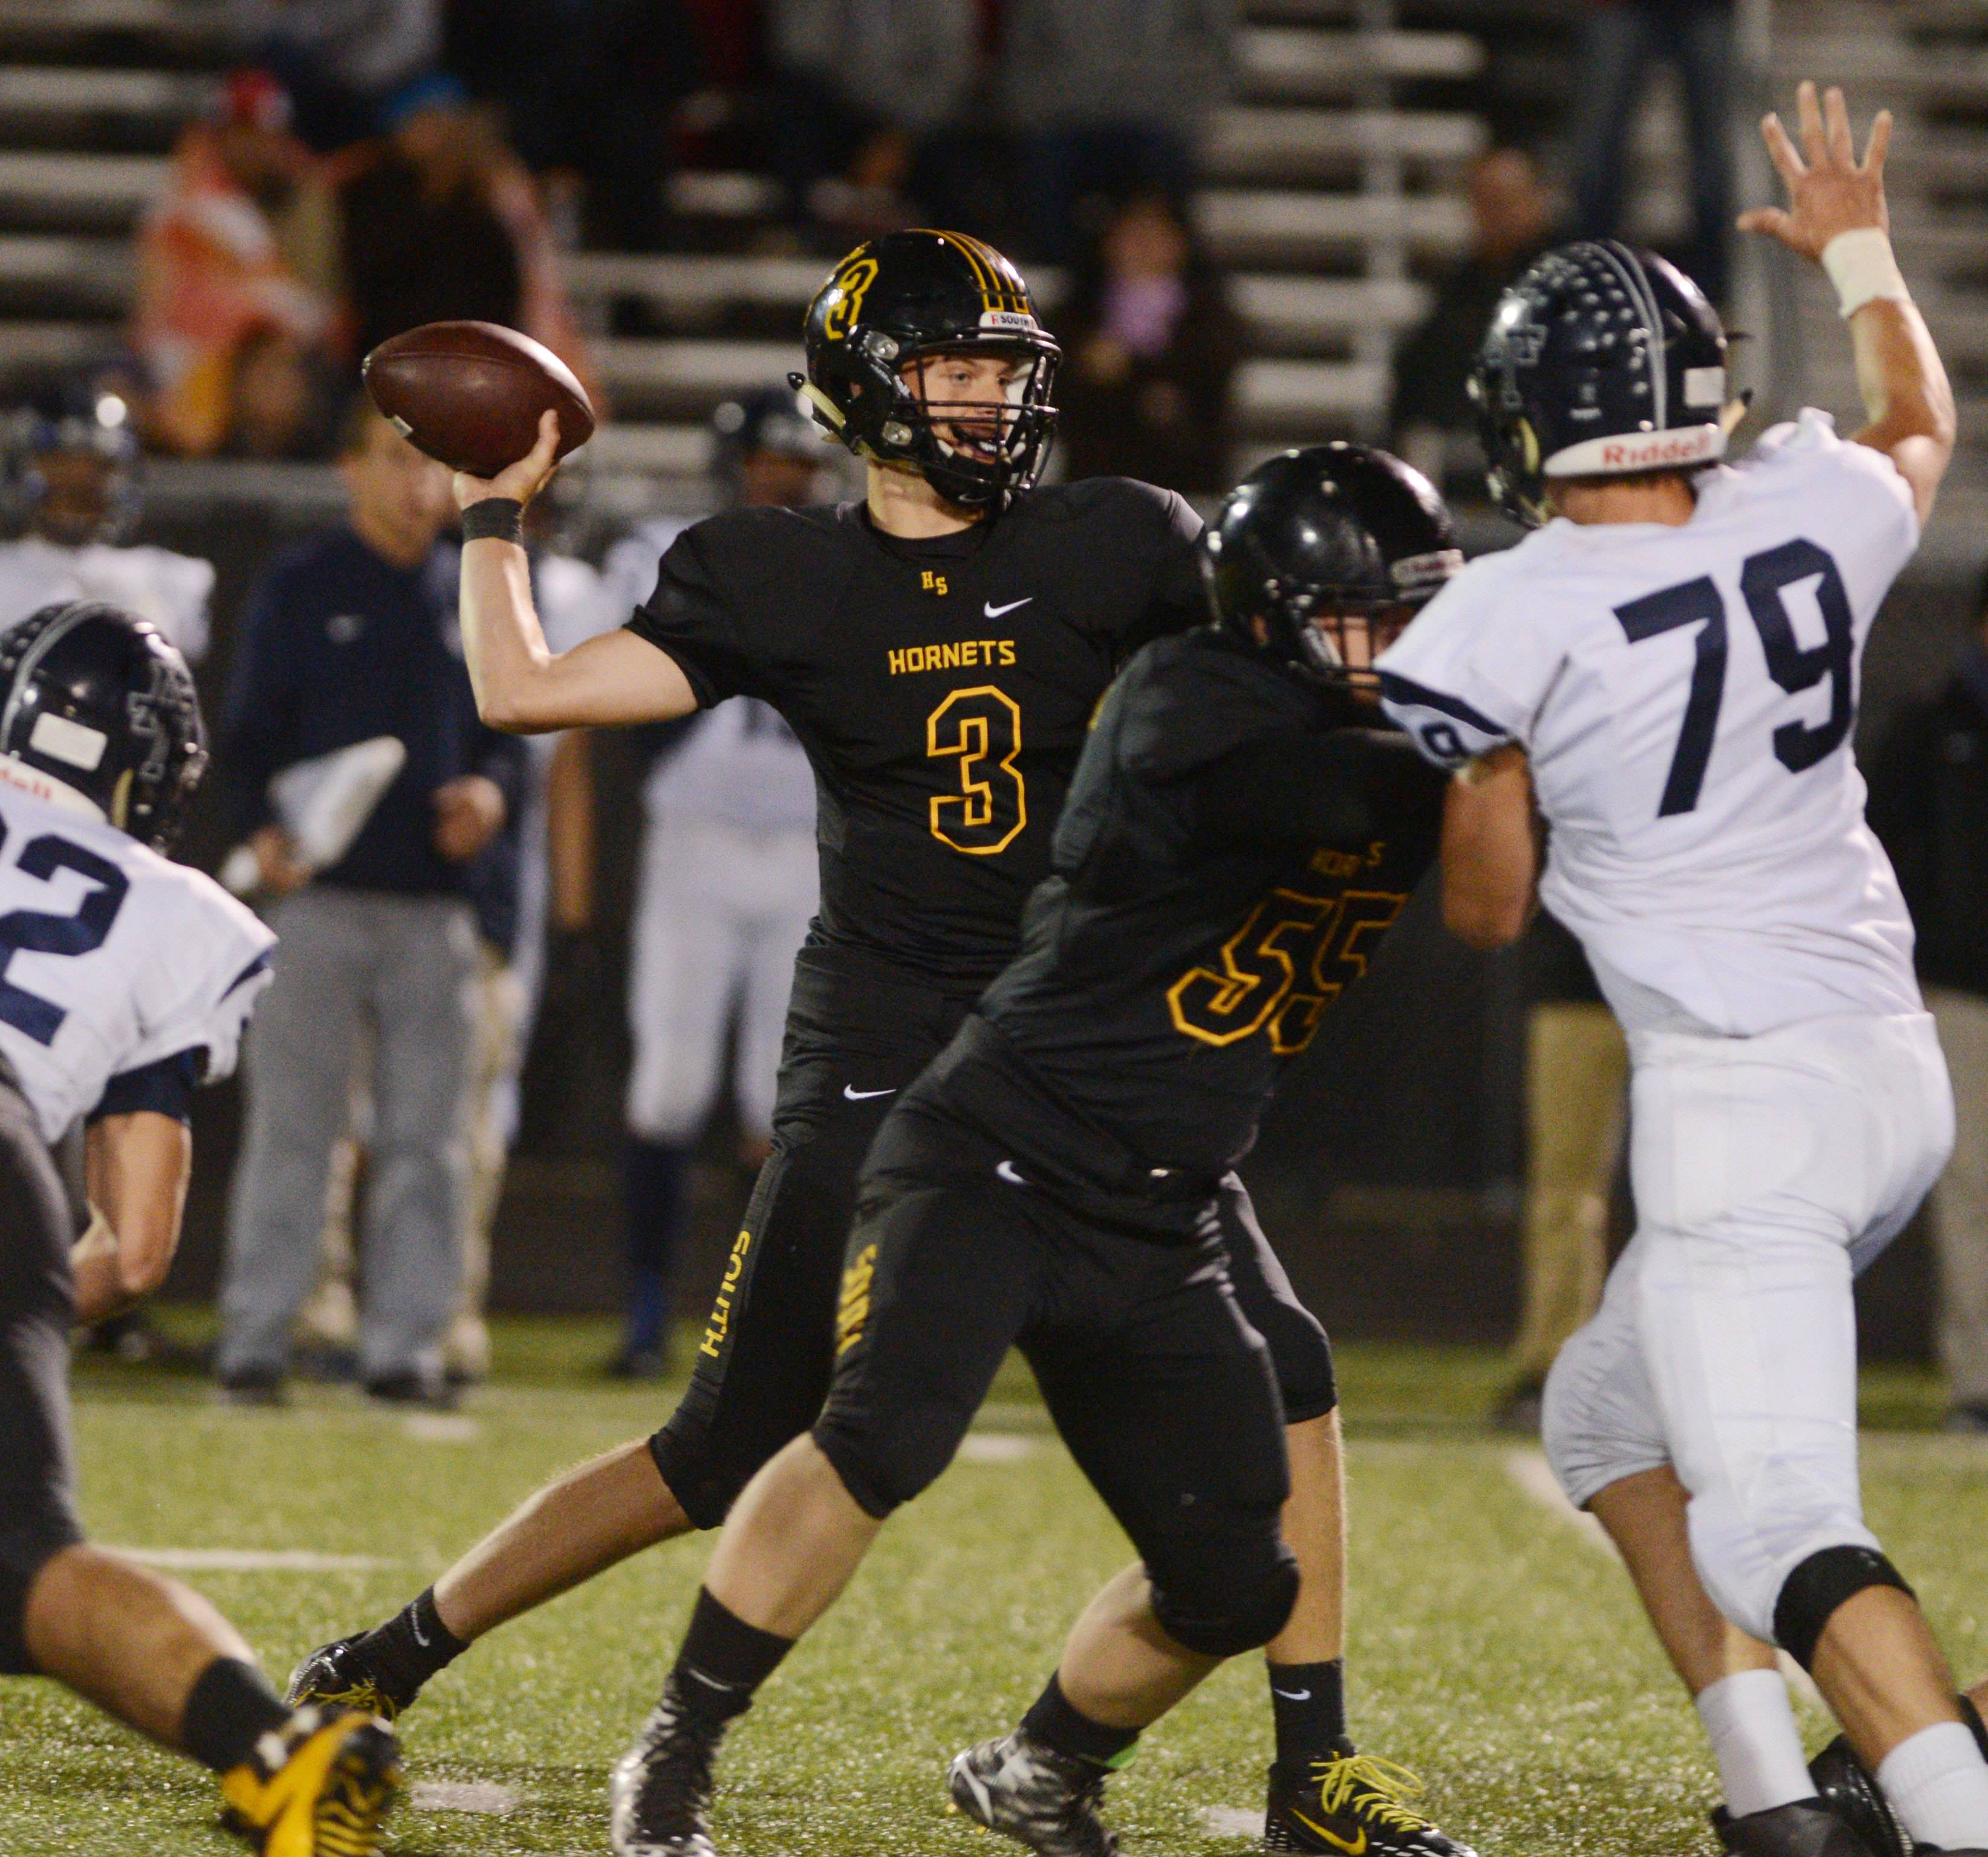 Sean McCormack of Hinsdale South looks for an open receiver.